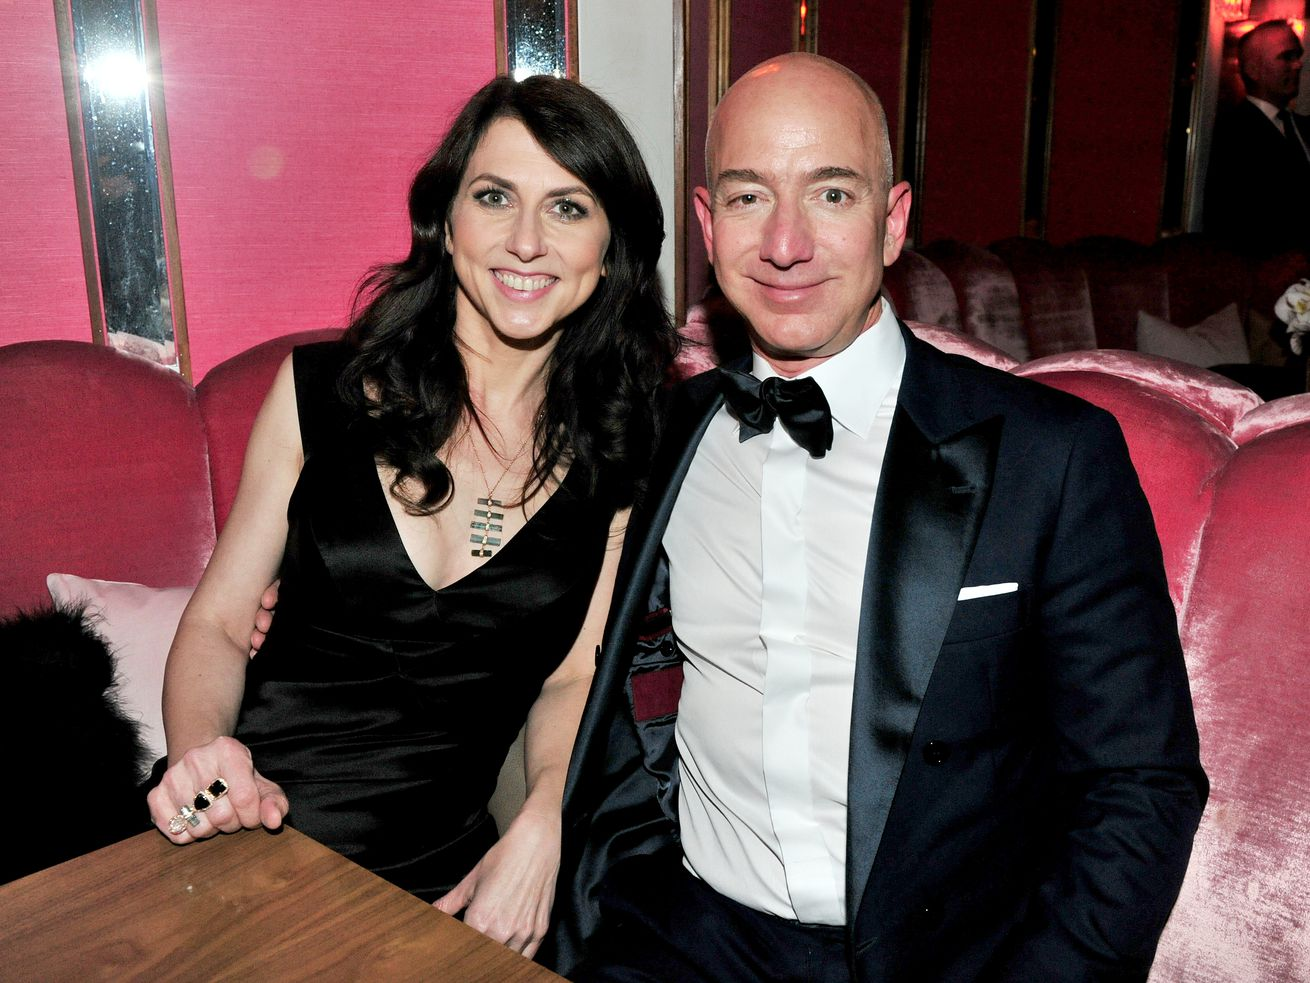 Jeff Bezos and MacKenzie Bezos attending an Amazon Studios Oscars party on February 26, 2017, in West Hollywood, California.